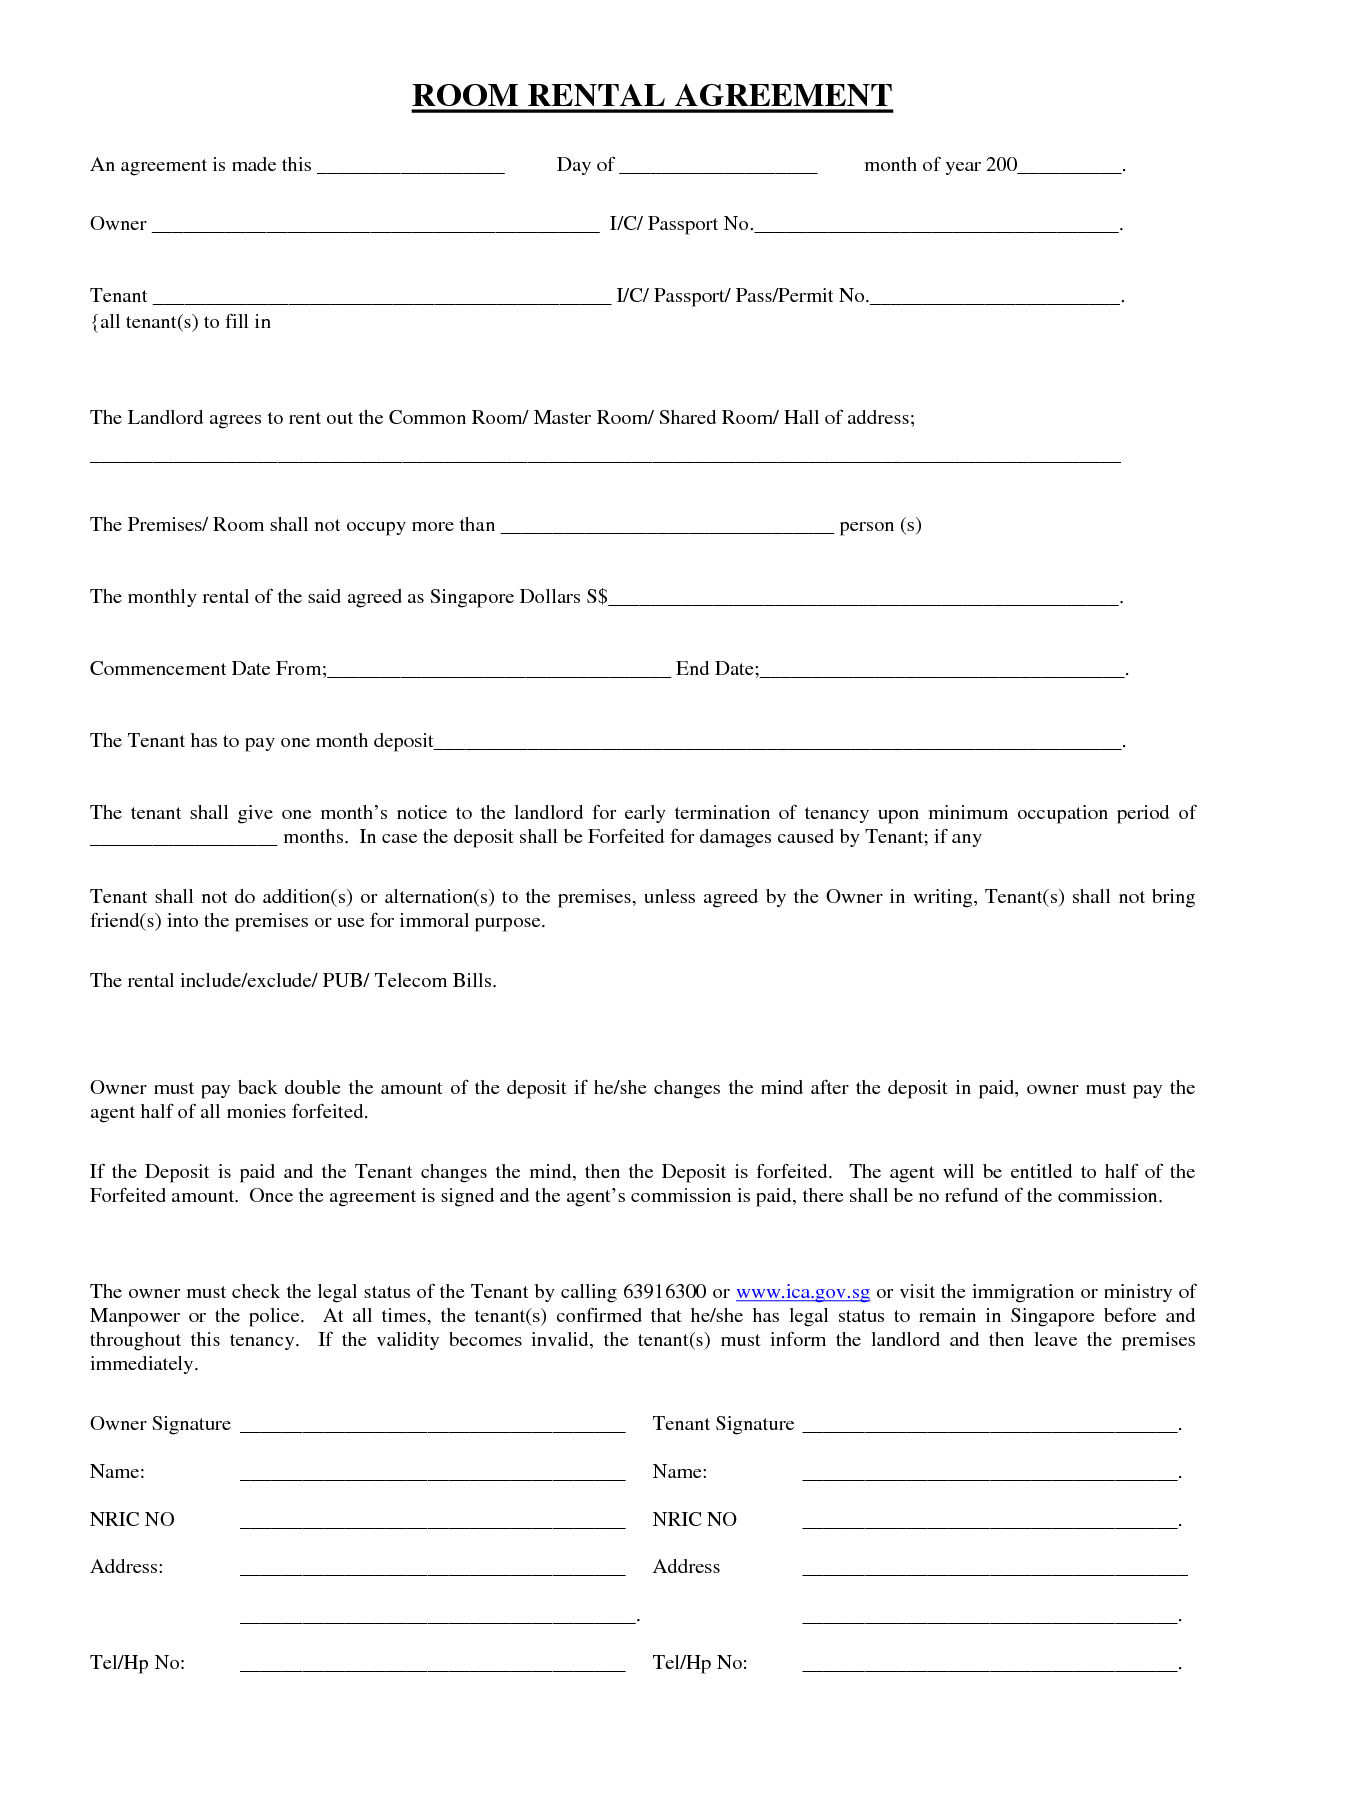 Rental Agreement Contract 006 House Rental Contract Template Homee Agreement Forms Washington